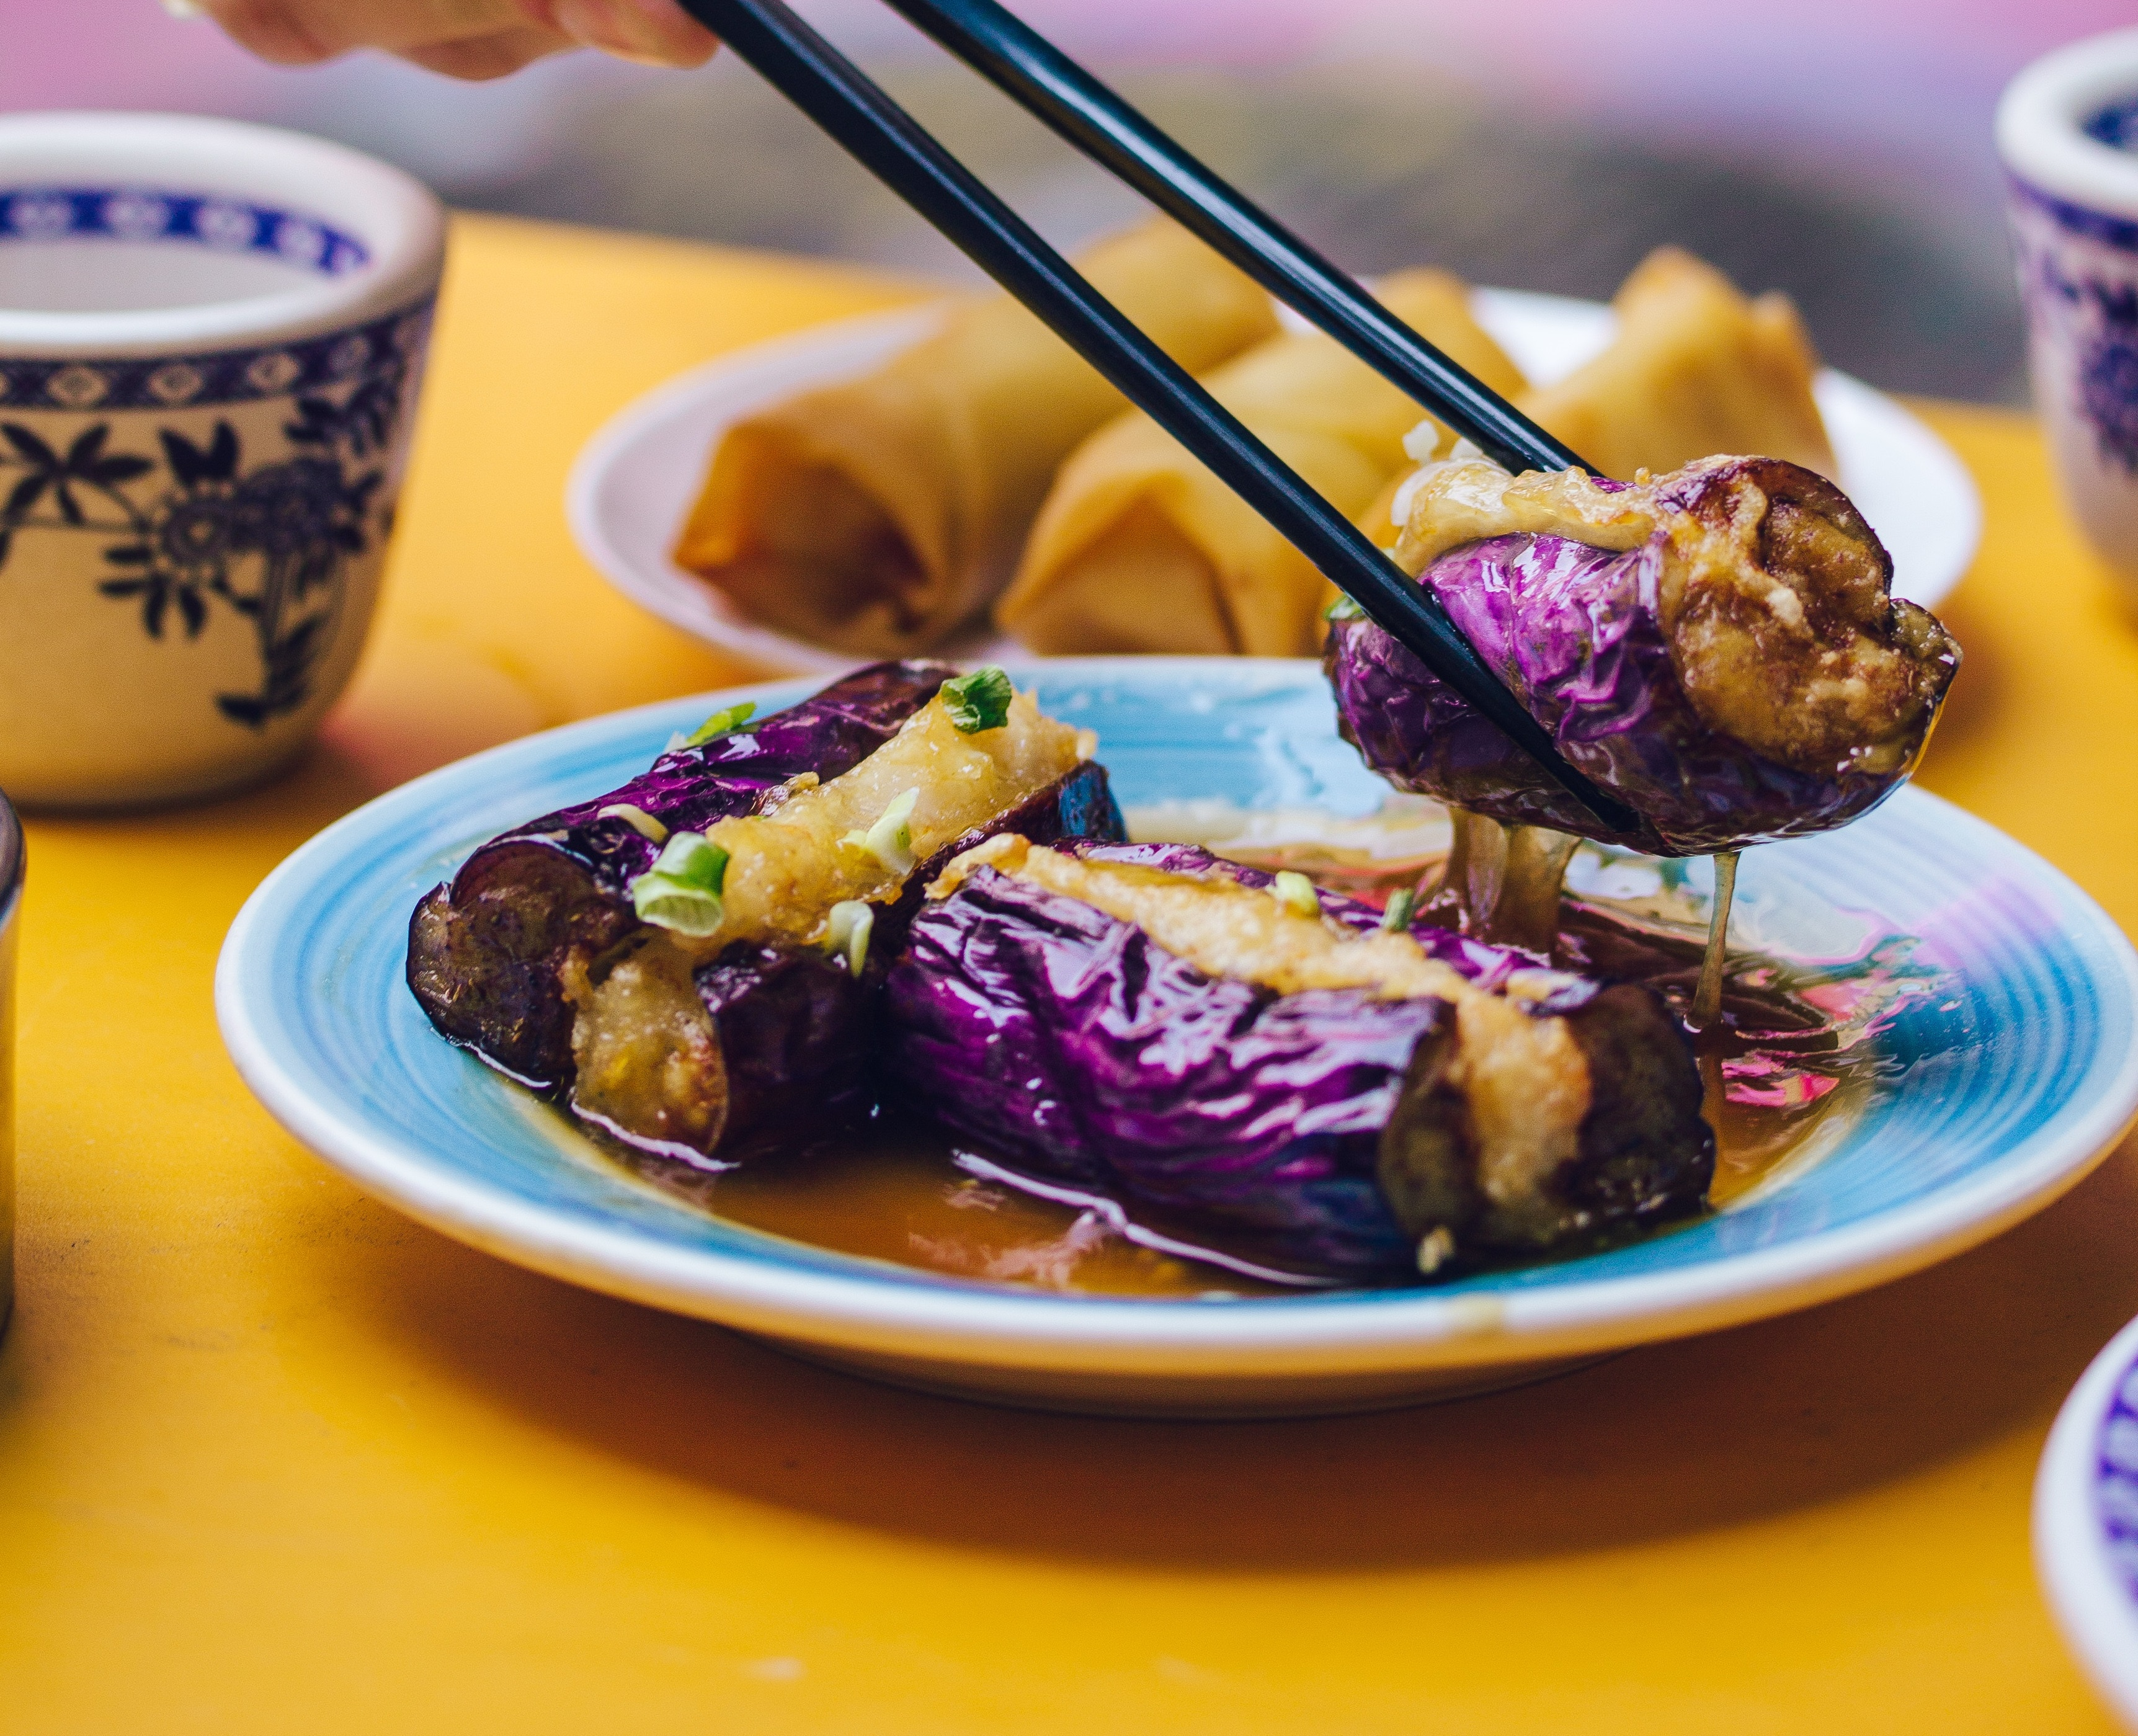 Eggplant held up with chopsticks